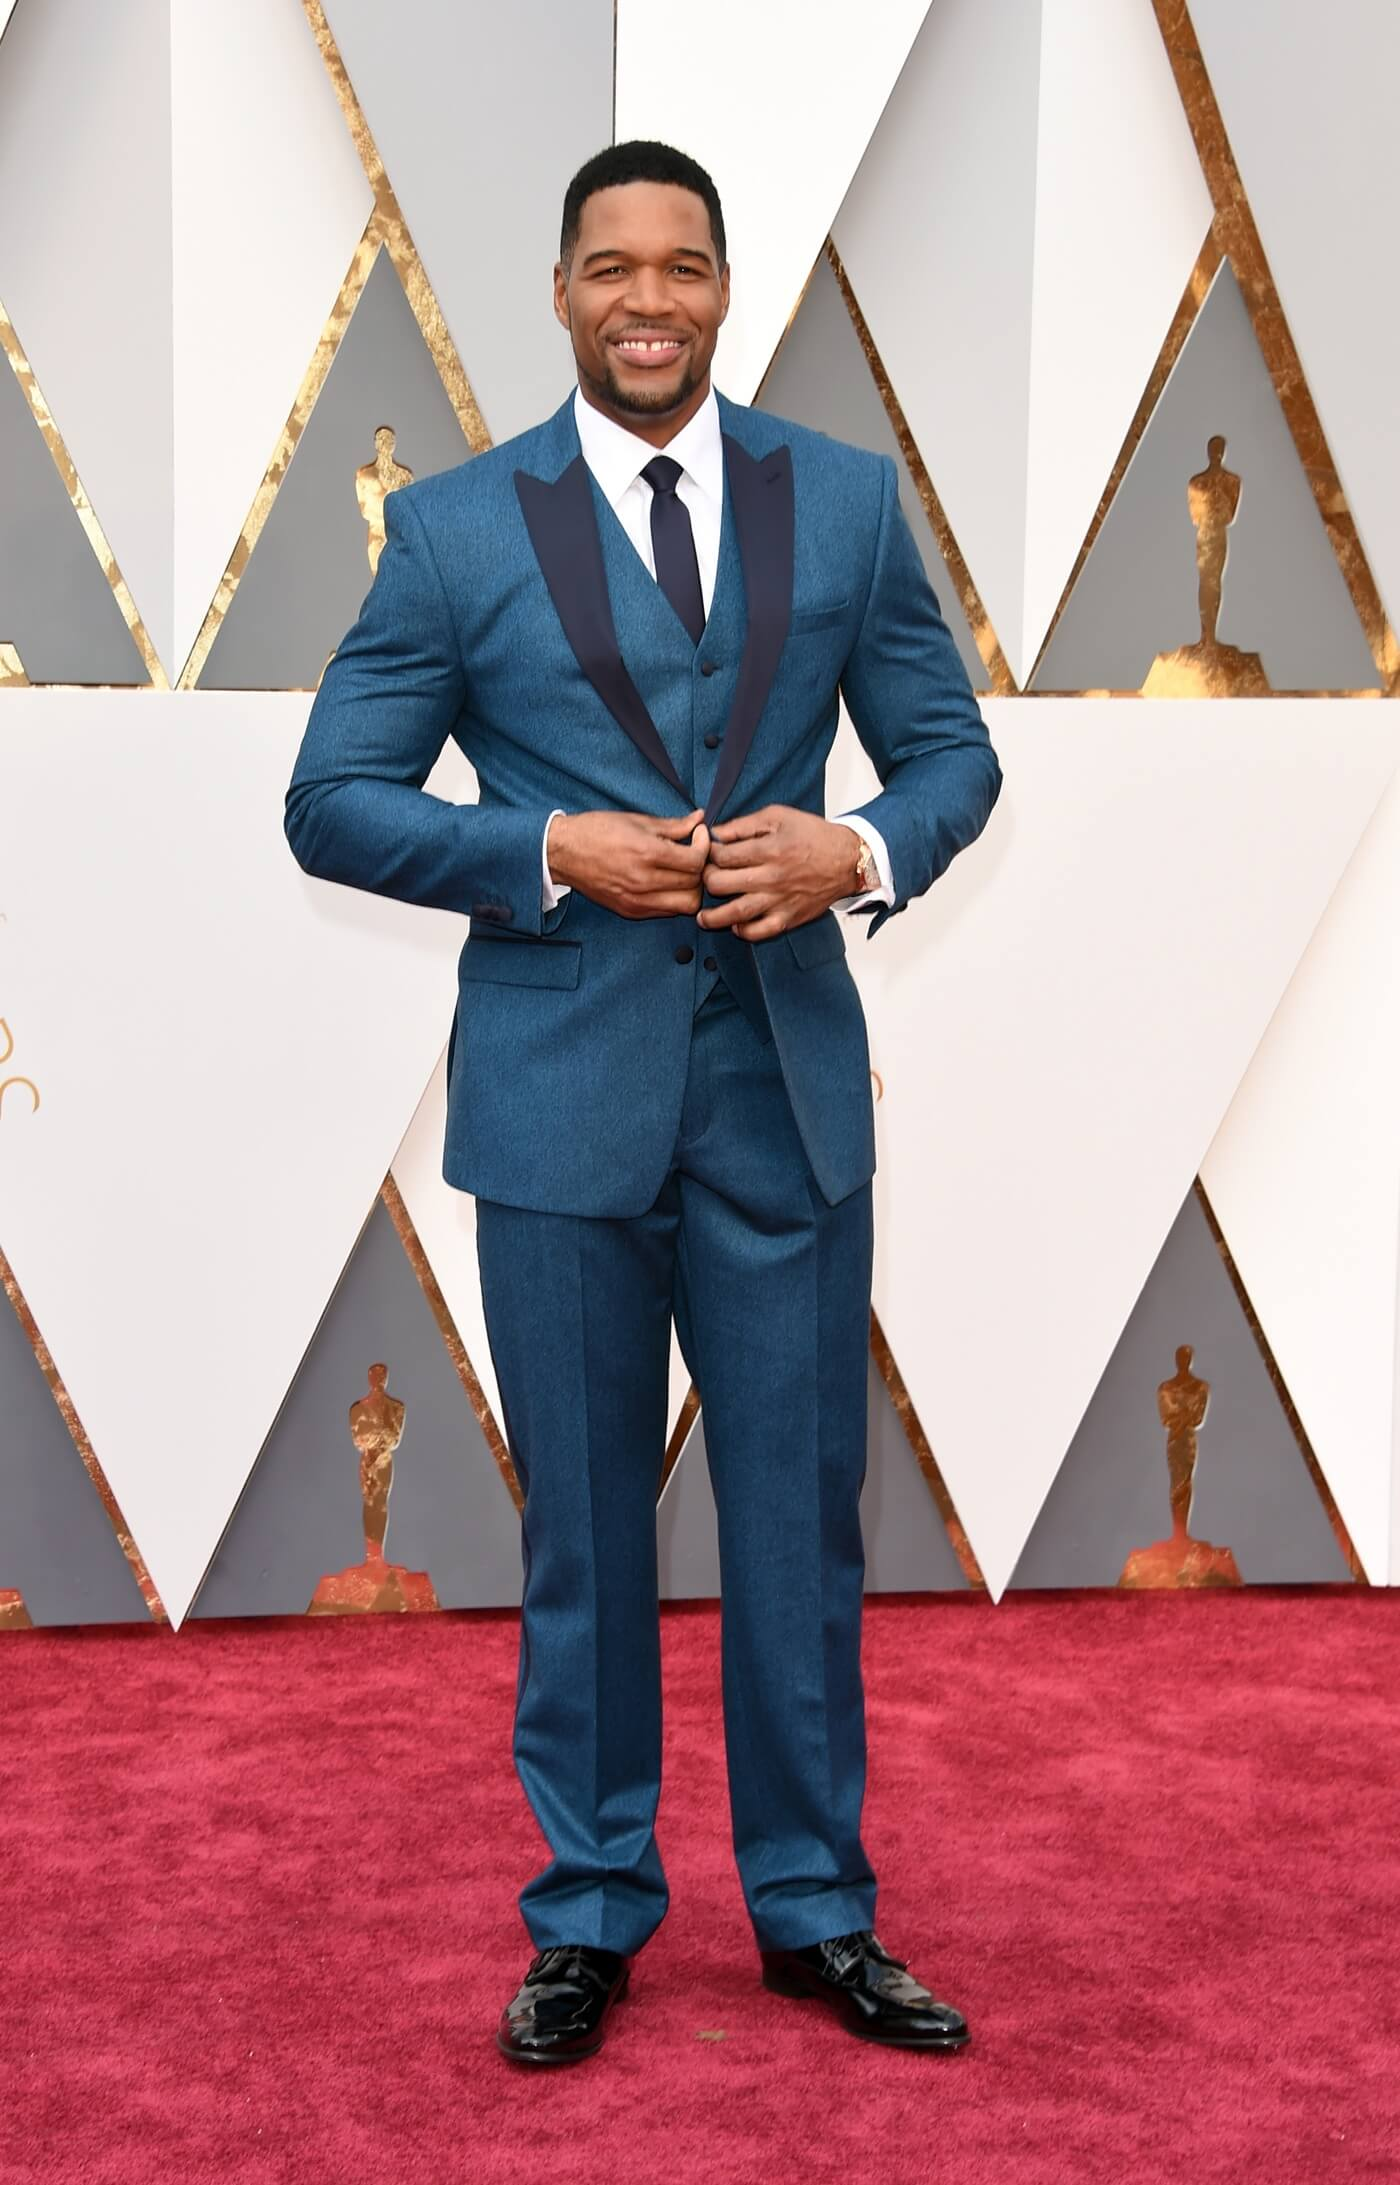 HOLLYWOOD, CA - FEBRUARY 28: TV personality Michael Strahan attends the 88th Annual Academy Awards at Hollywood & Highland Center on February 28, 2016 in Hollywood, California. (Photo by Jason Merritt/Getty Images)